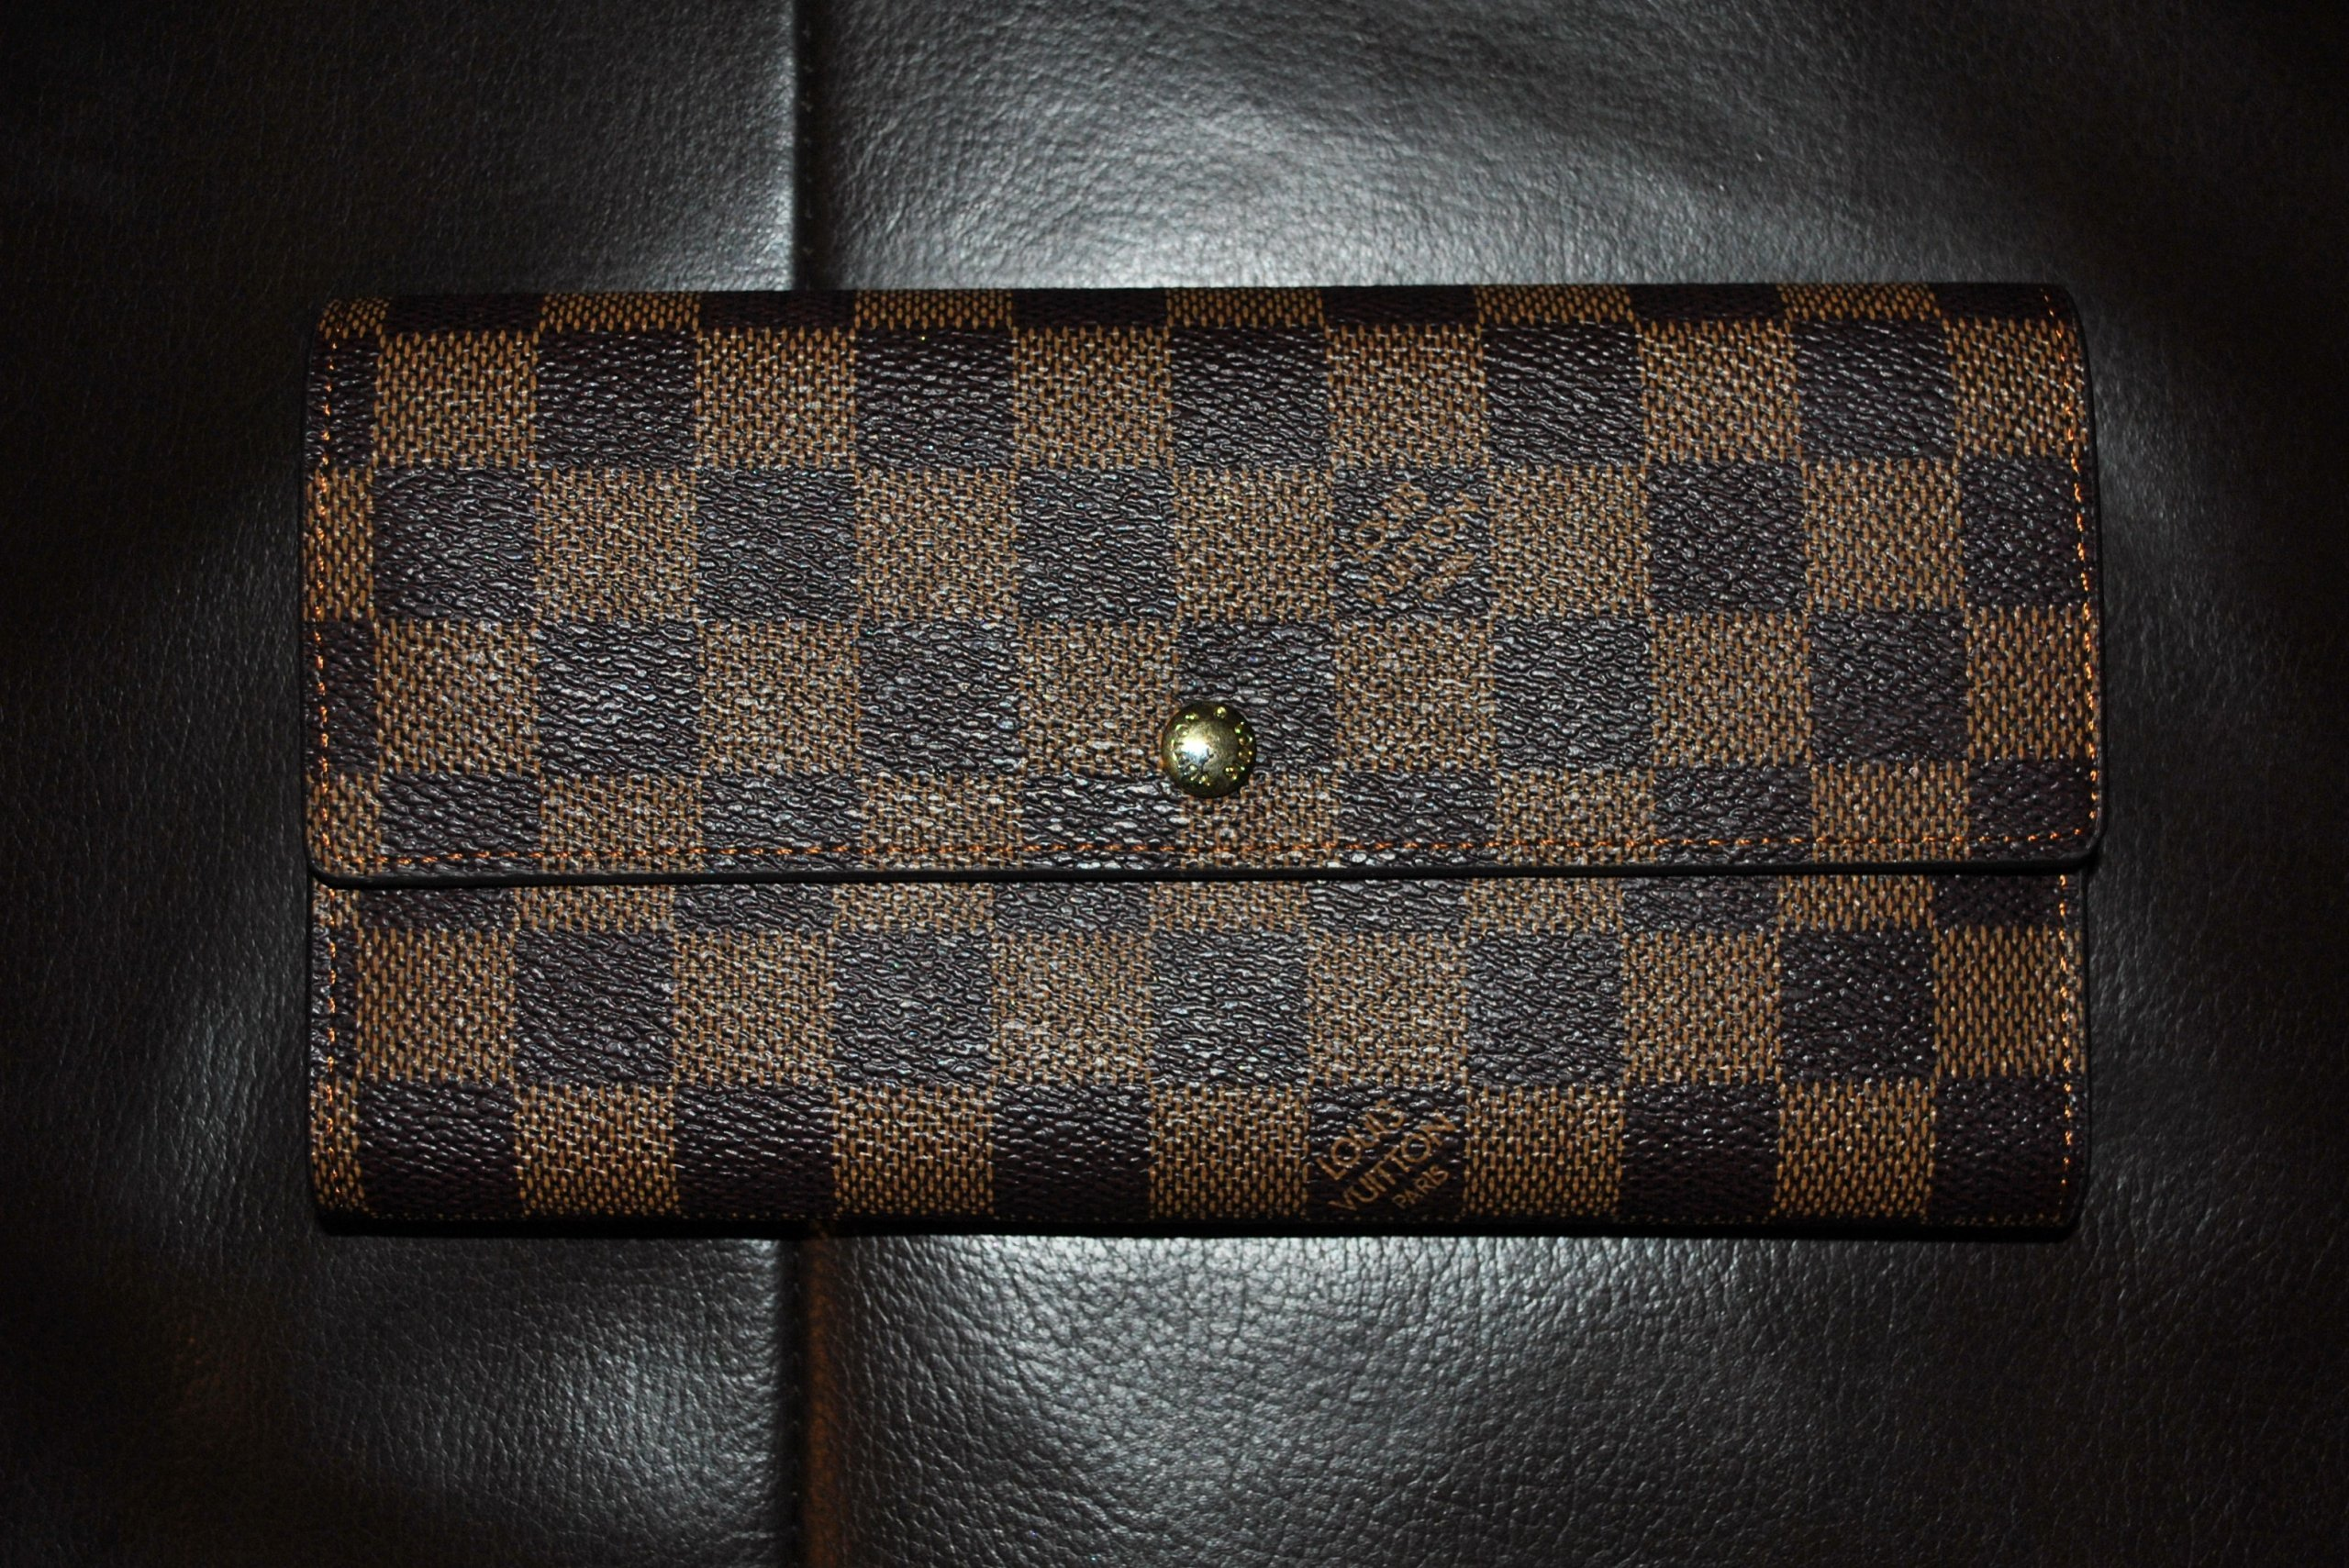 7ae1f68d77df5 PORTFEL LOUIS VUITTON PARIS damier ebene canvas - 7082920979 ...